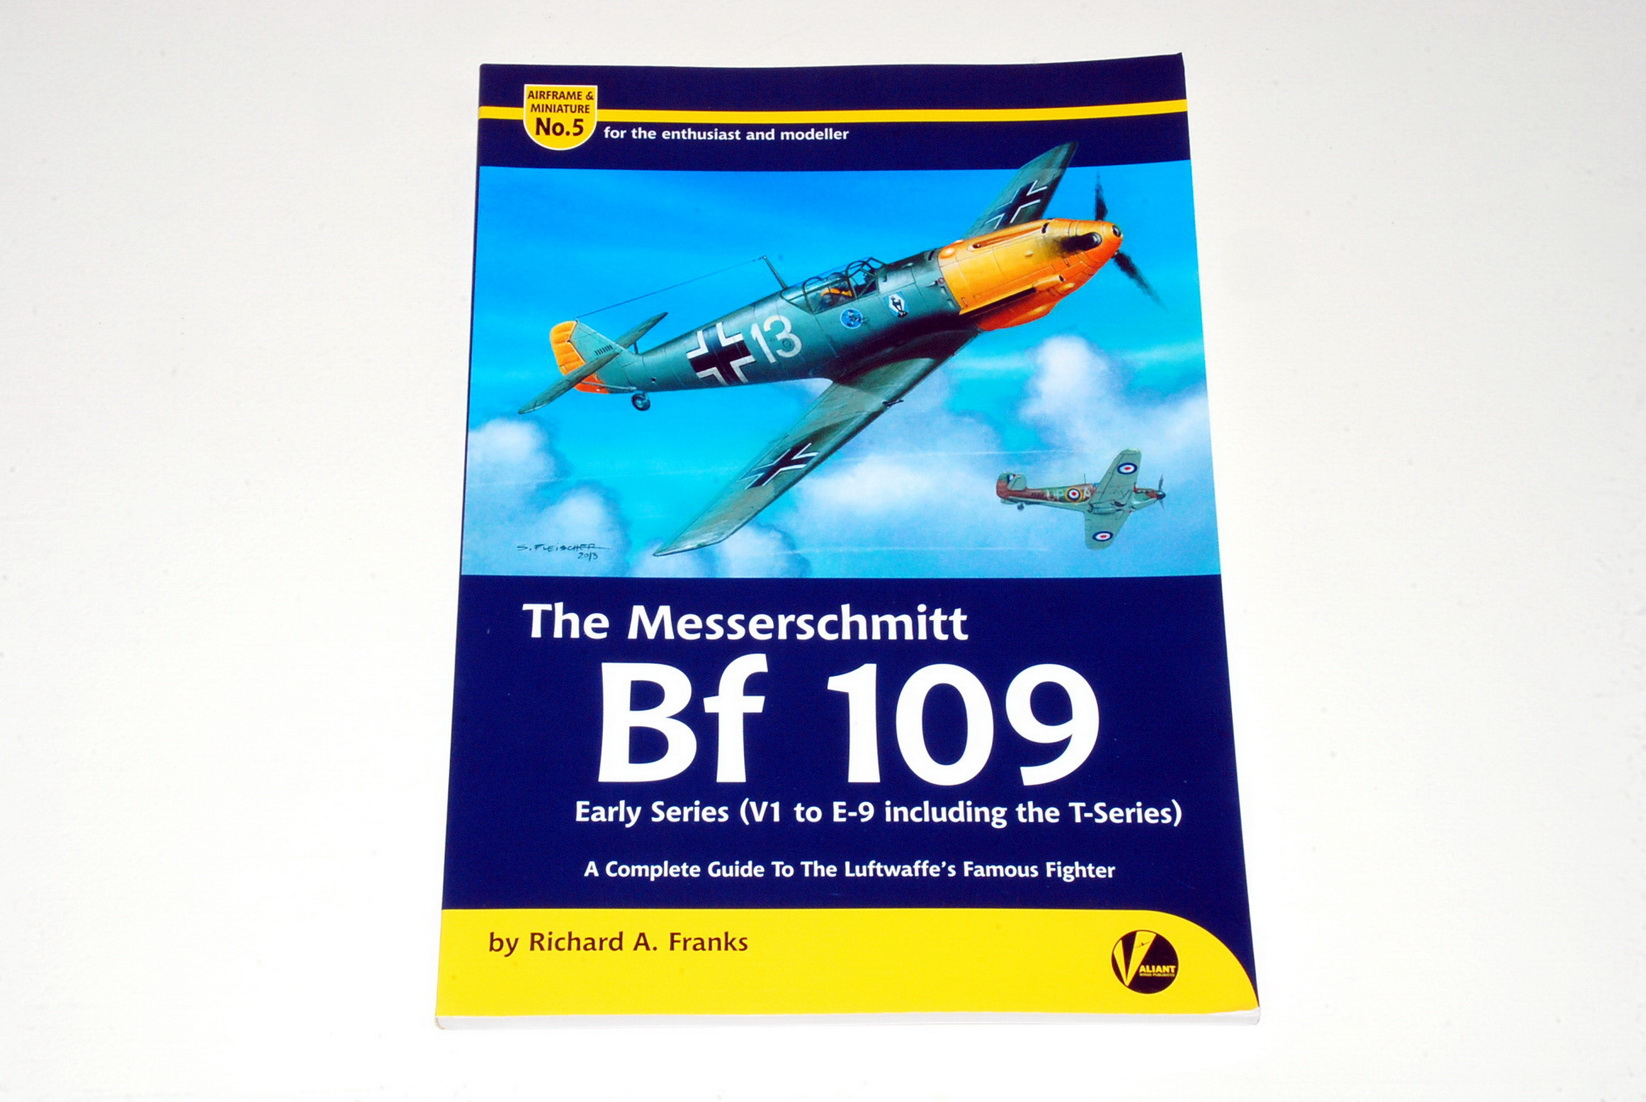 The Messerschmitt Bf 109 Early Series, Airframe & Miniature 5, by Richard A. Franks (Valiant Wings)